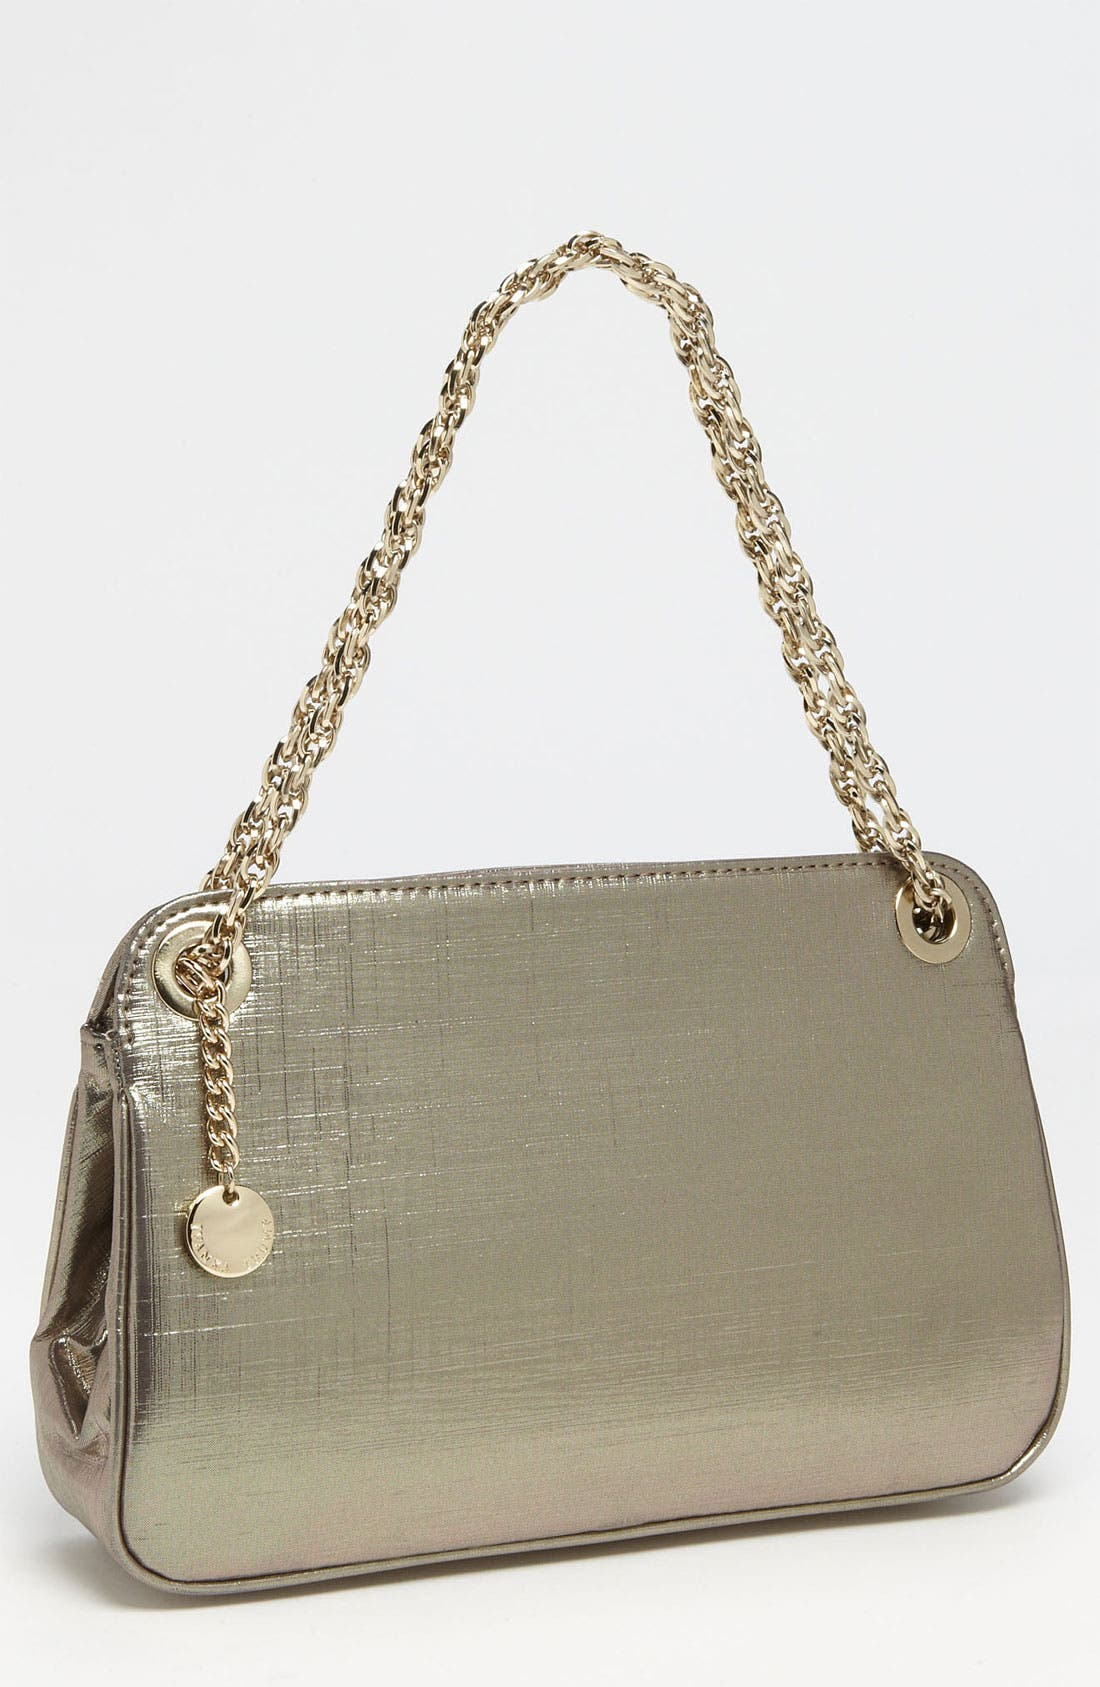 Main Image - Ivanka Trump 'Cynthia' Shoulder Bag